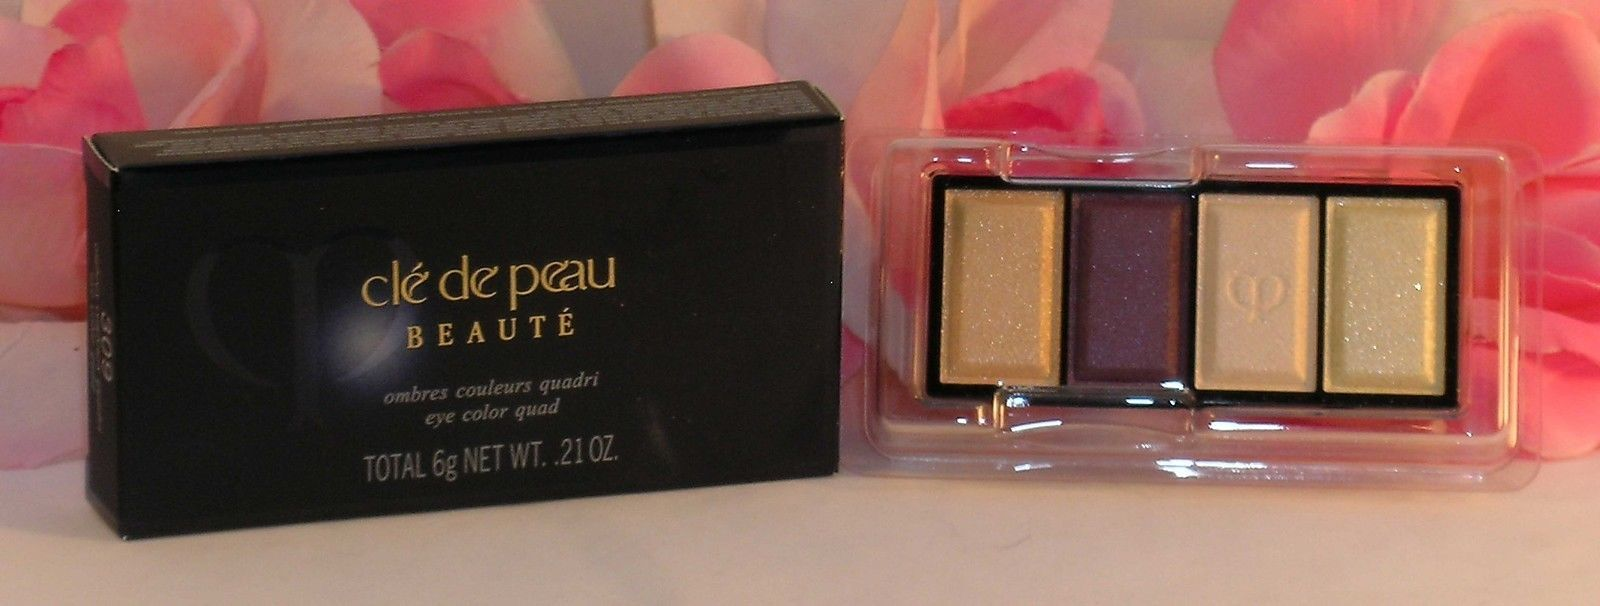 Primary image for New Shiseido Cle De Peau Beaute Eye Shadow Quad Refill #309 Colors & Highlights